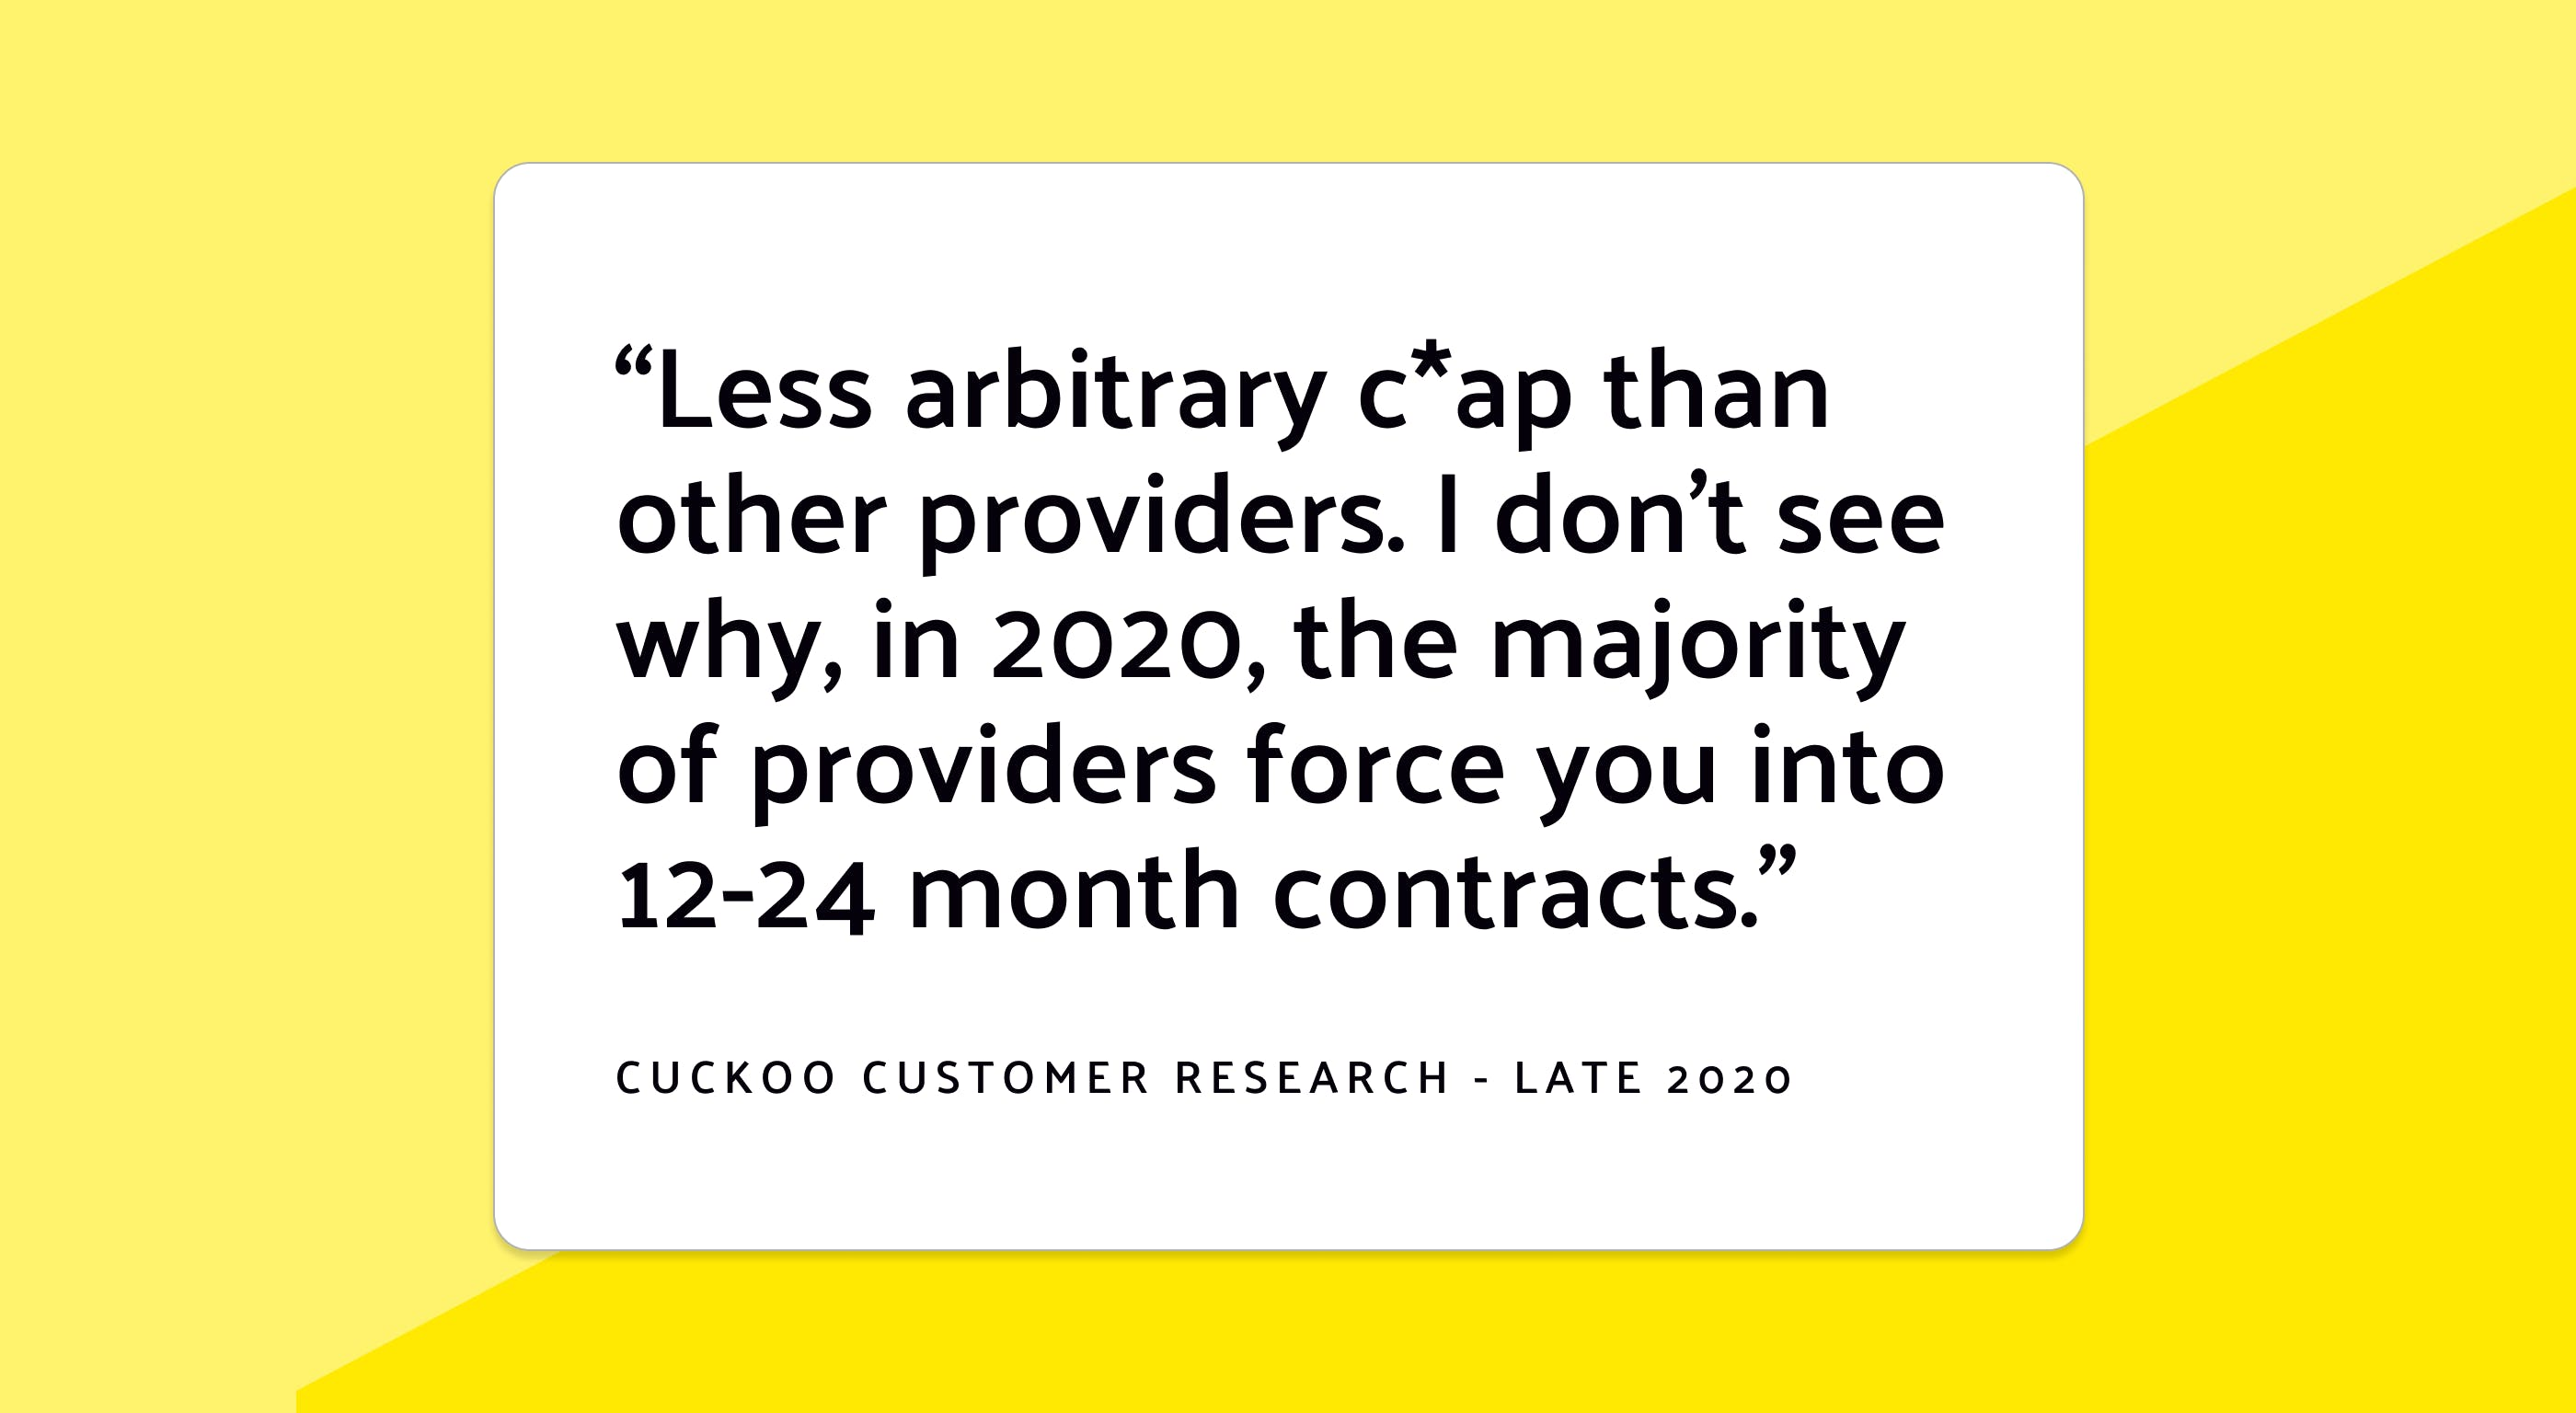 """Trustpilot review: """"Less arbitrary c*ap than other providers. I don't see why, in 2020, the majority of providers force you into 12-24 month contracts."""""""